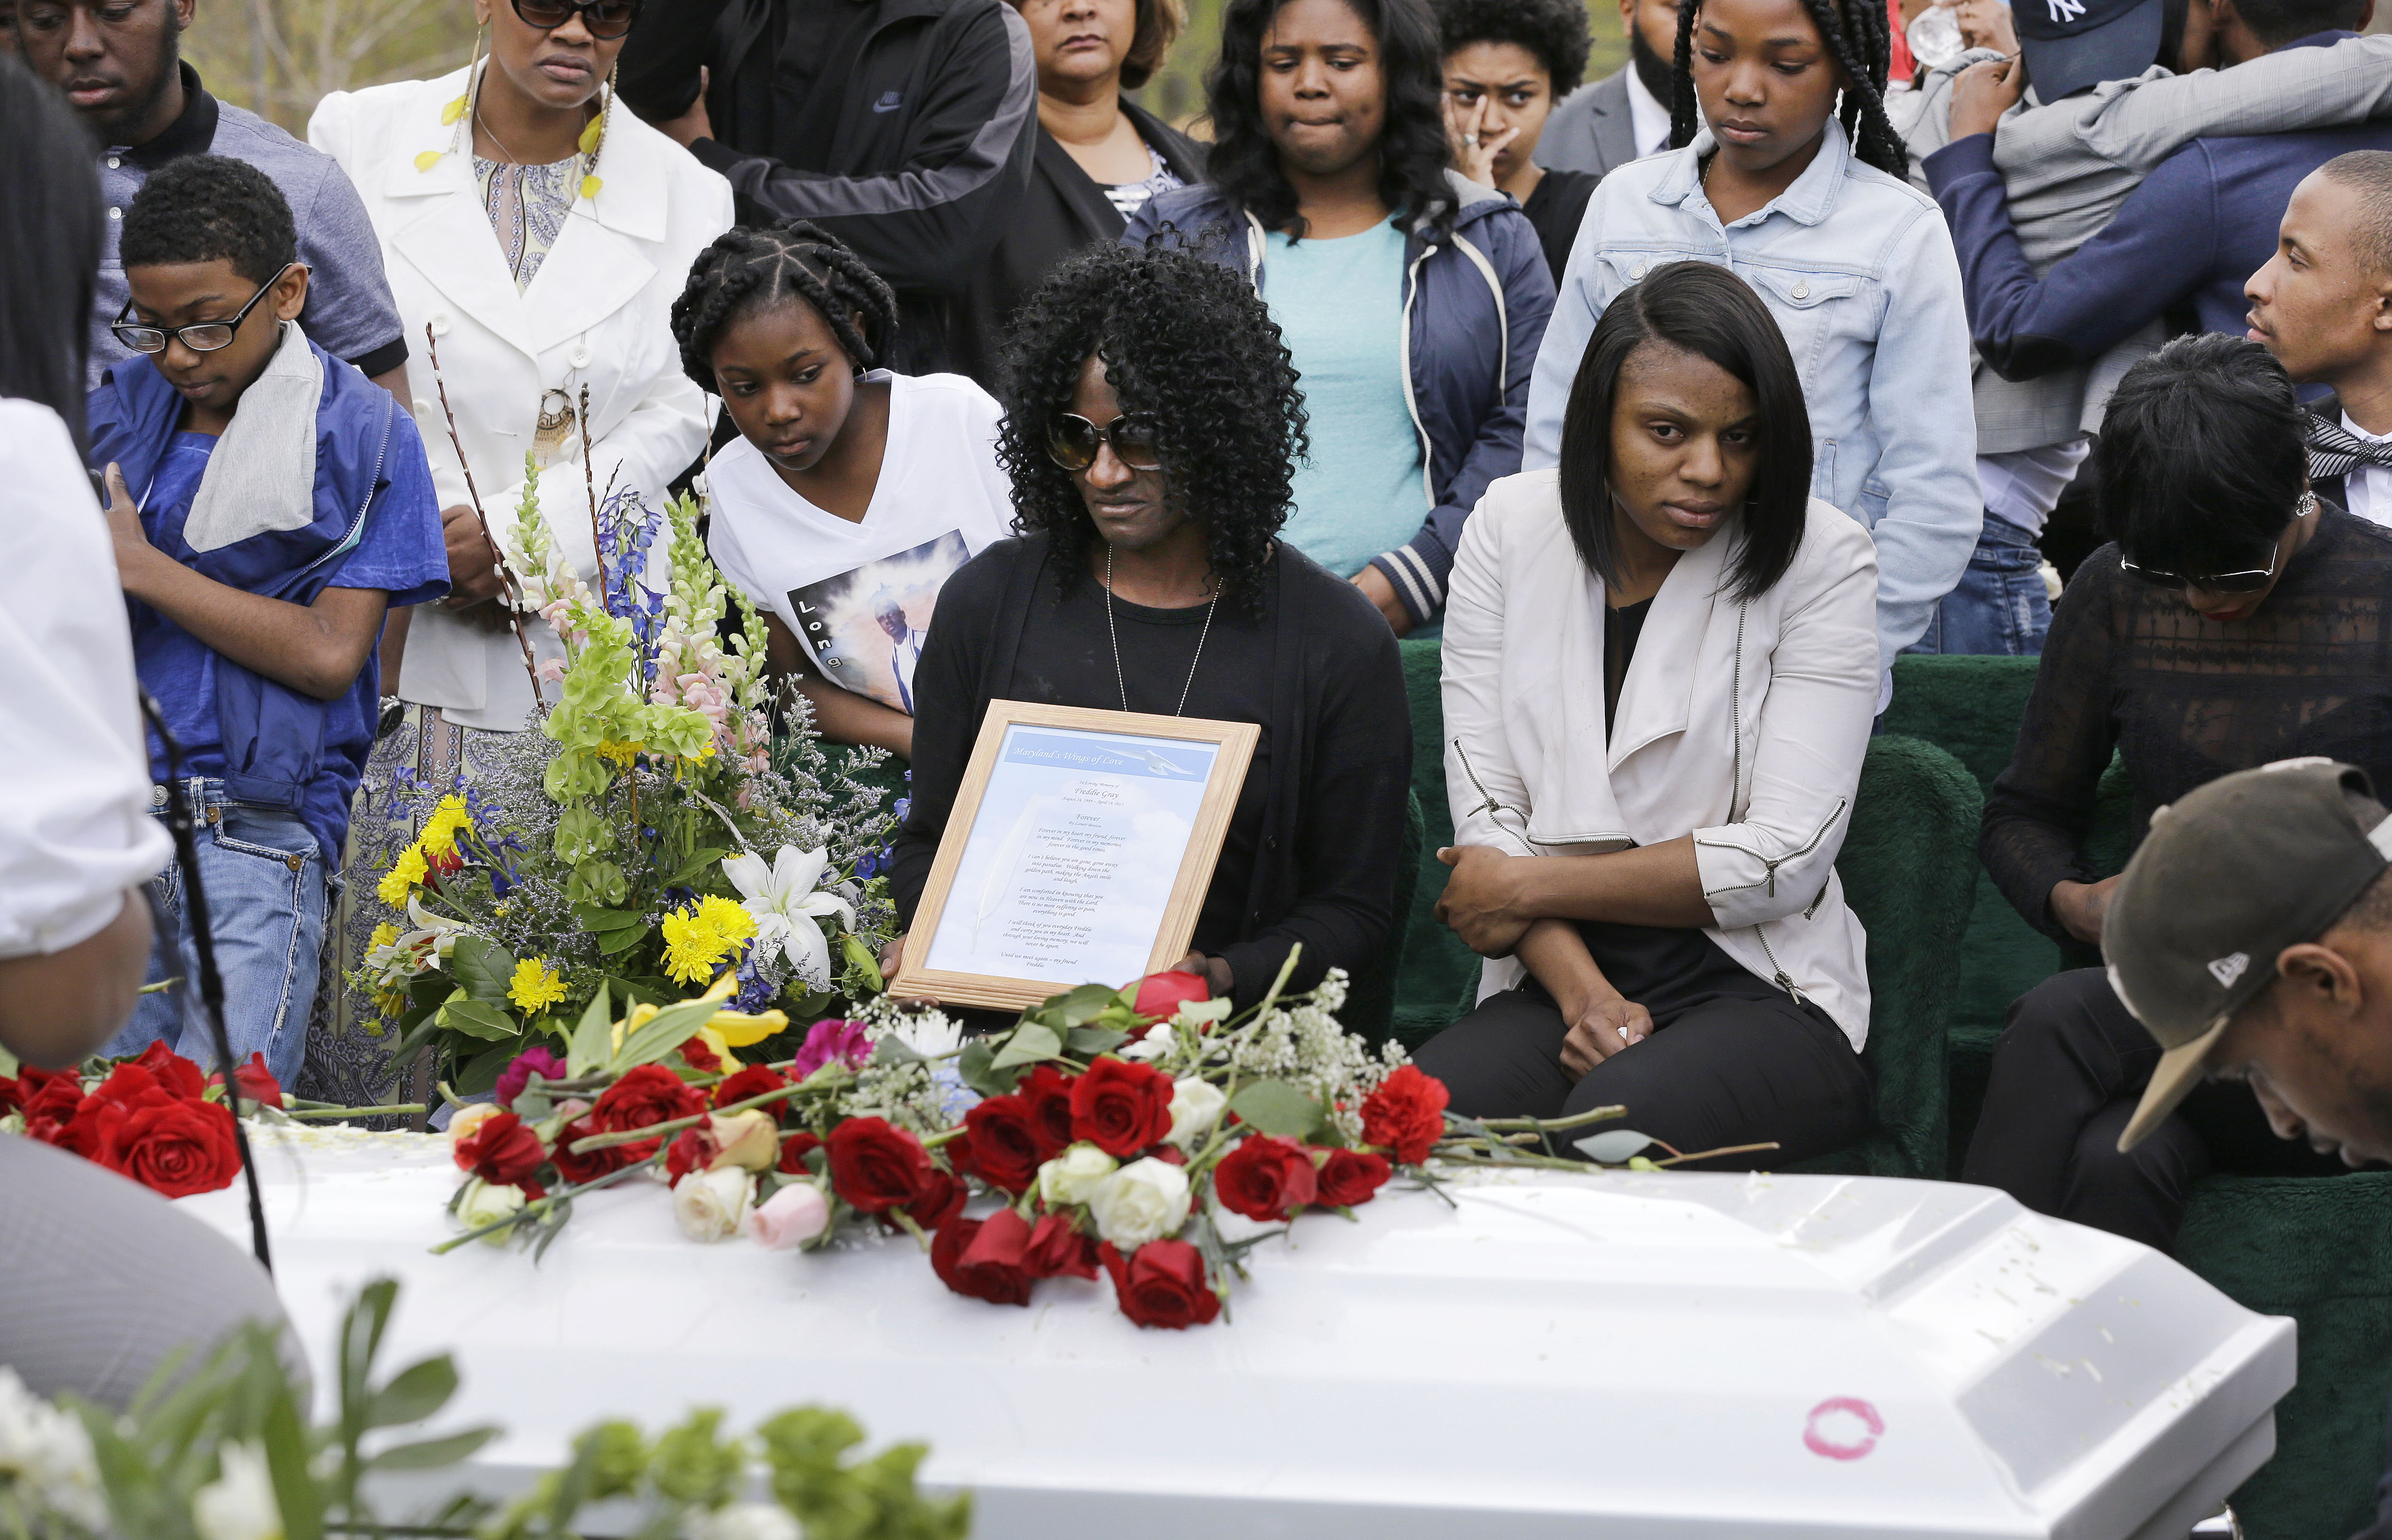 Gloria Darden (C), mother of Freddie Gray, at Gray's burial in Baltimore on April 27, 2015.